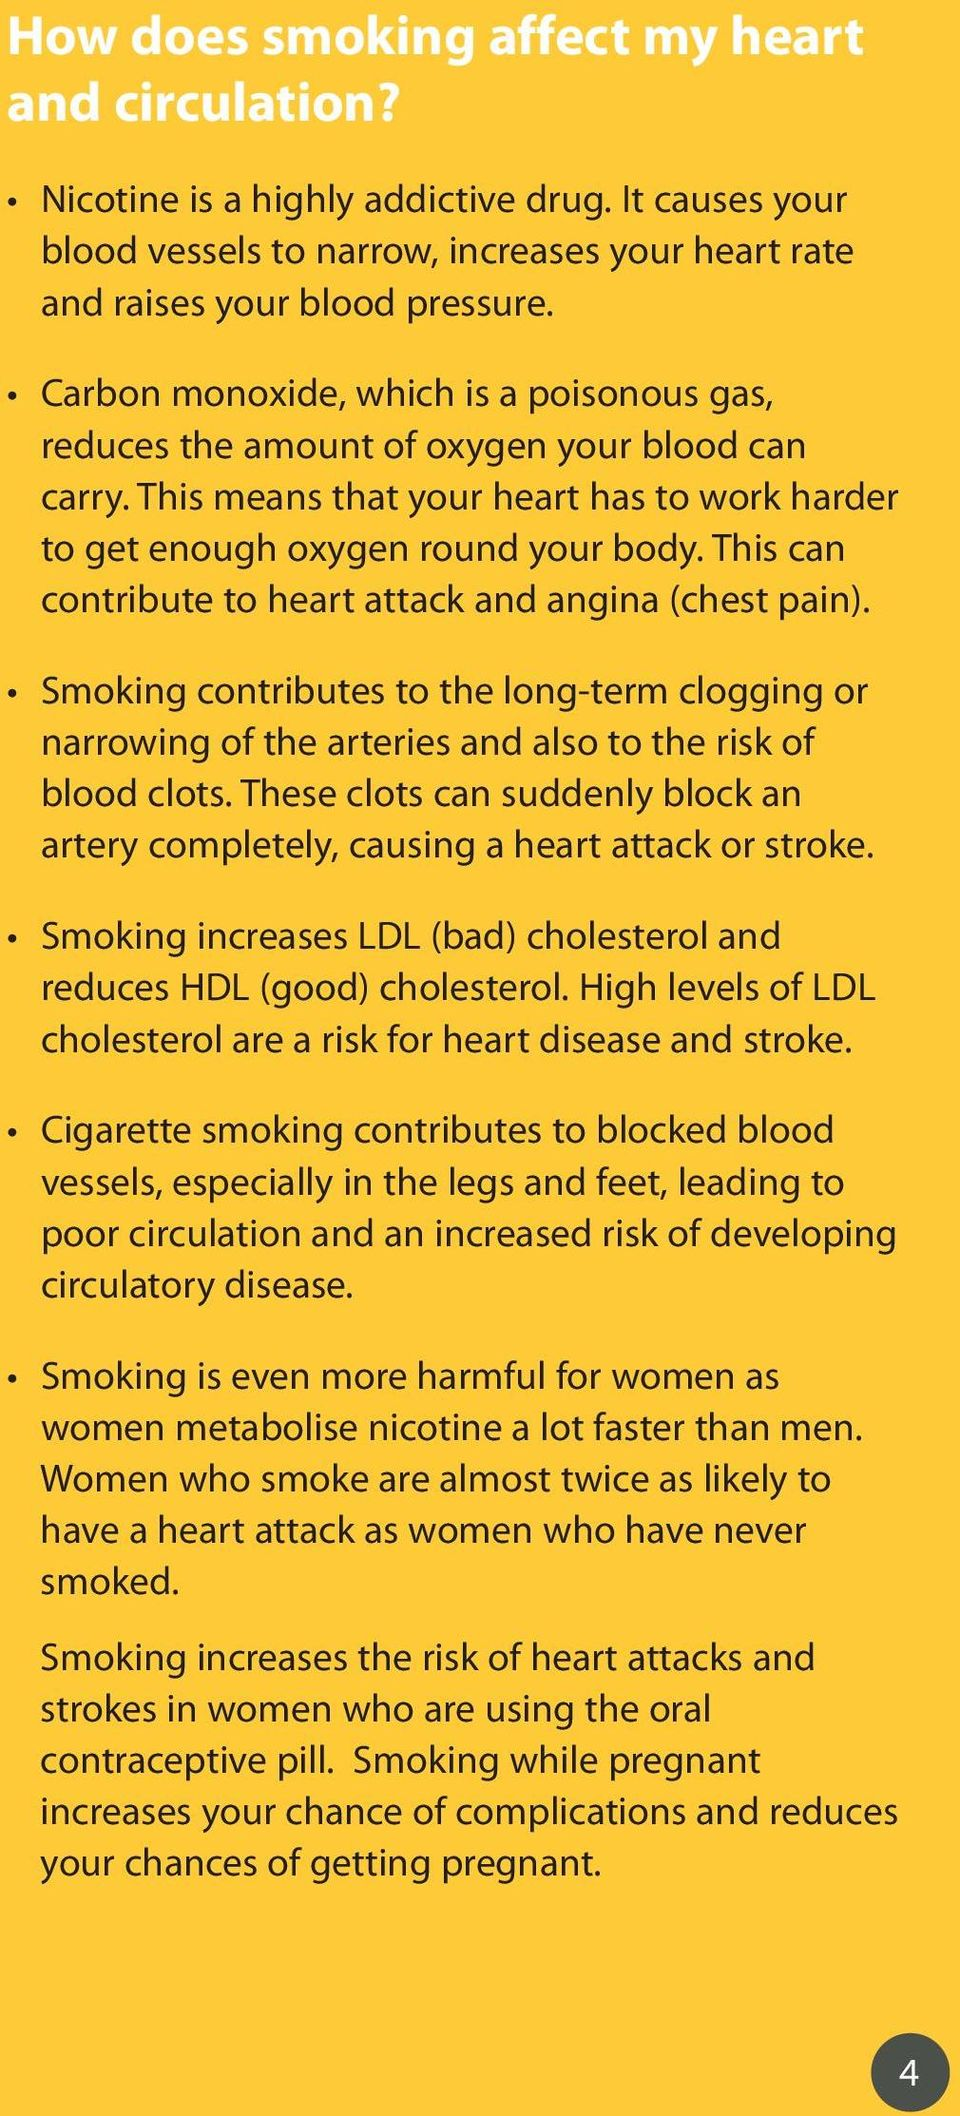 This can contribute to heart attack and angina (chest pain). Smoking contributes to the long-term clogging or narrowing of the arteries and also to the risk of blood clots.